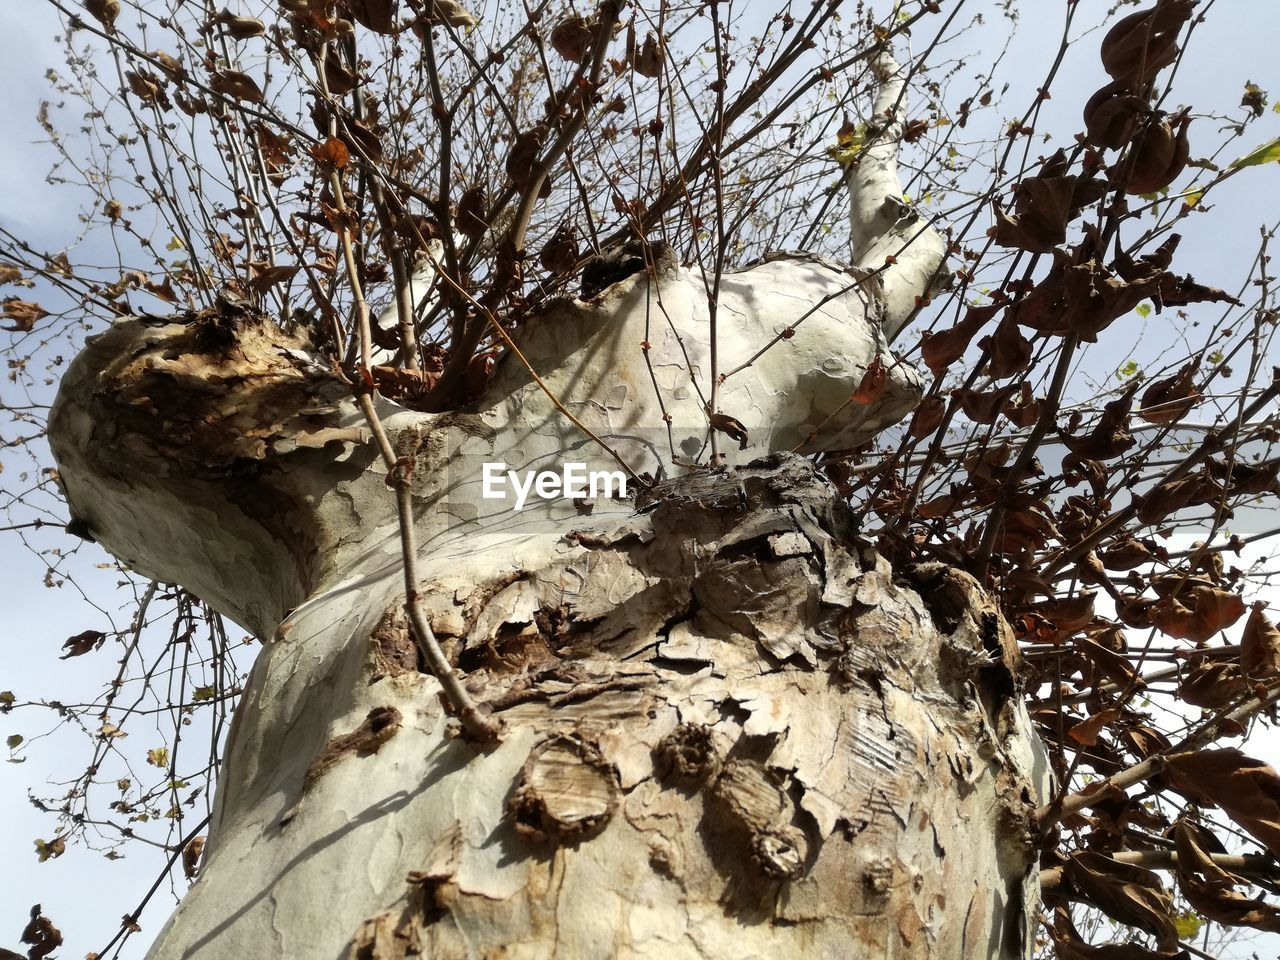 tree, plant, day, nature, no people, branch, dry, outdoors, close-up, low angle view, growth, land, tree trunk, trunk, beauty in nature, plant part, bark, fragility, focus on foreground, leaf, dead plant, dried, wilted plant